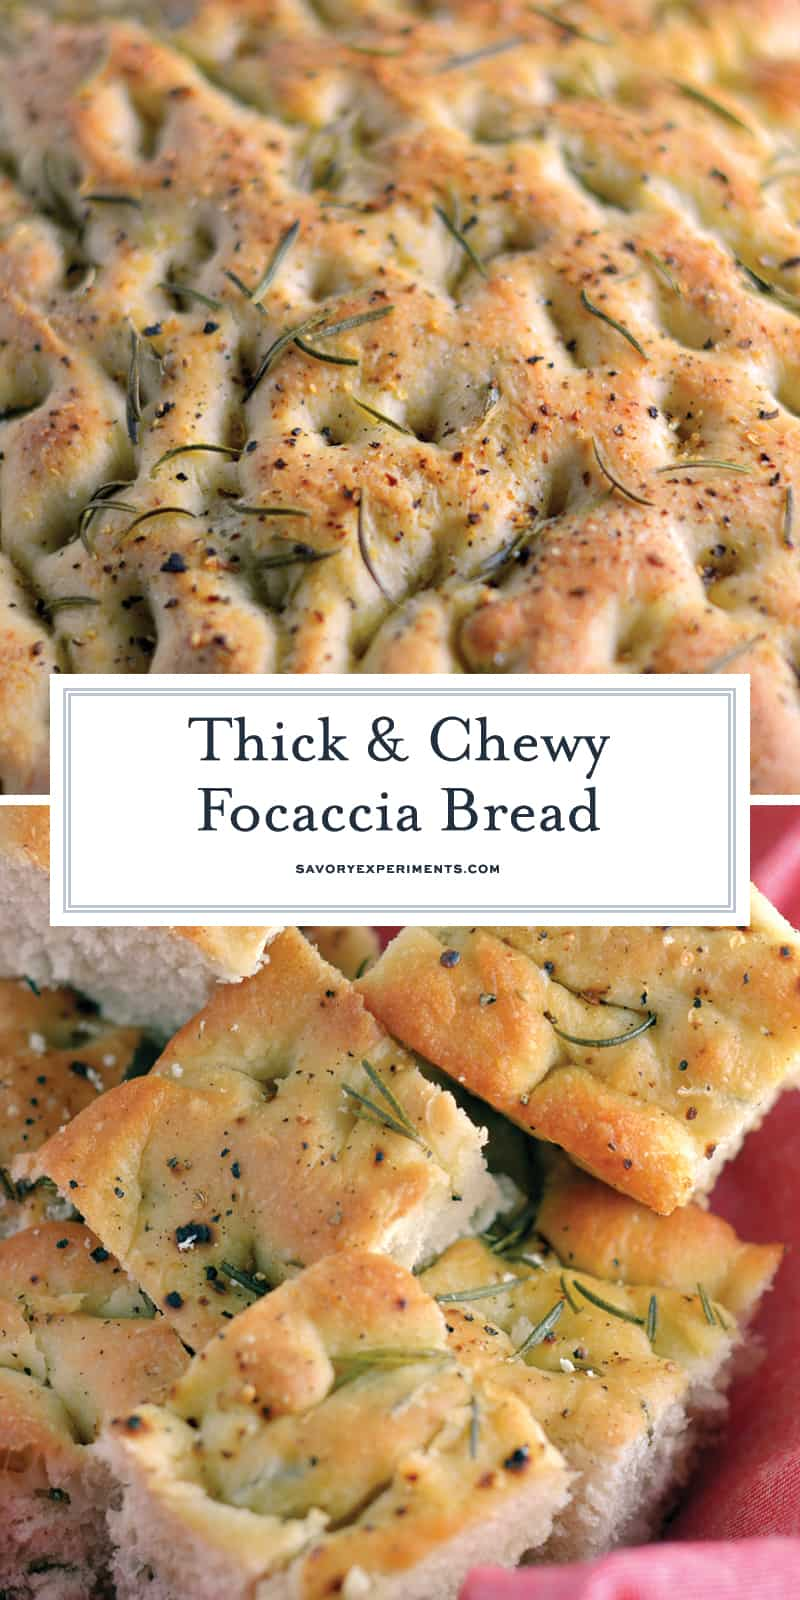 Thick and Chewy Focaccia Bread is a delicious focaccia bread recipe topped with sea salt and fresh herbs, paired with Italian bread dip, it is sure to please! #fococciabread #fococciabreadrecipe #whatisfocaccia www.savoryexperiments.com